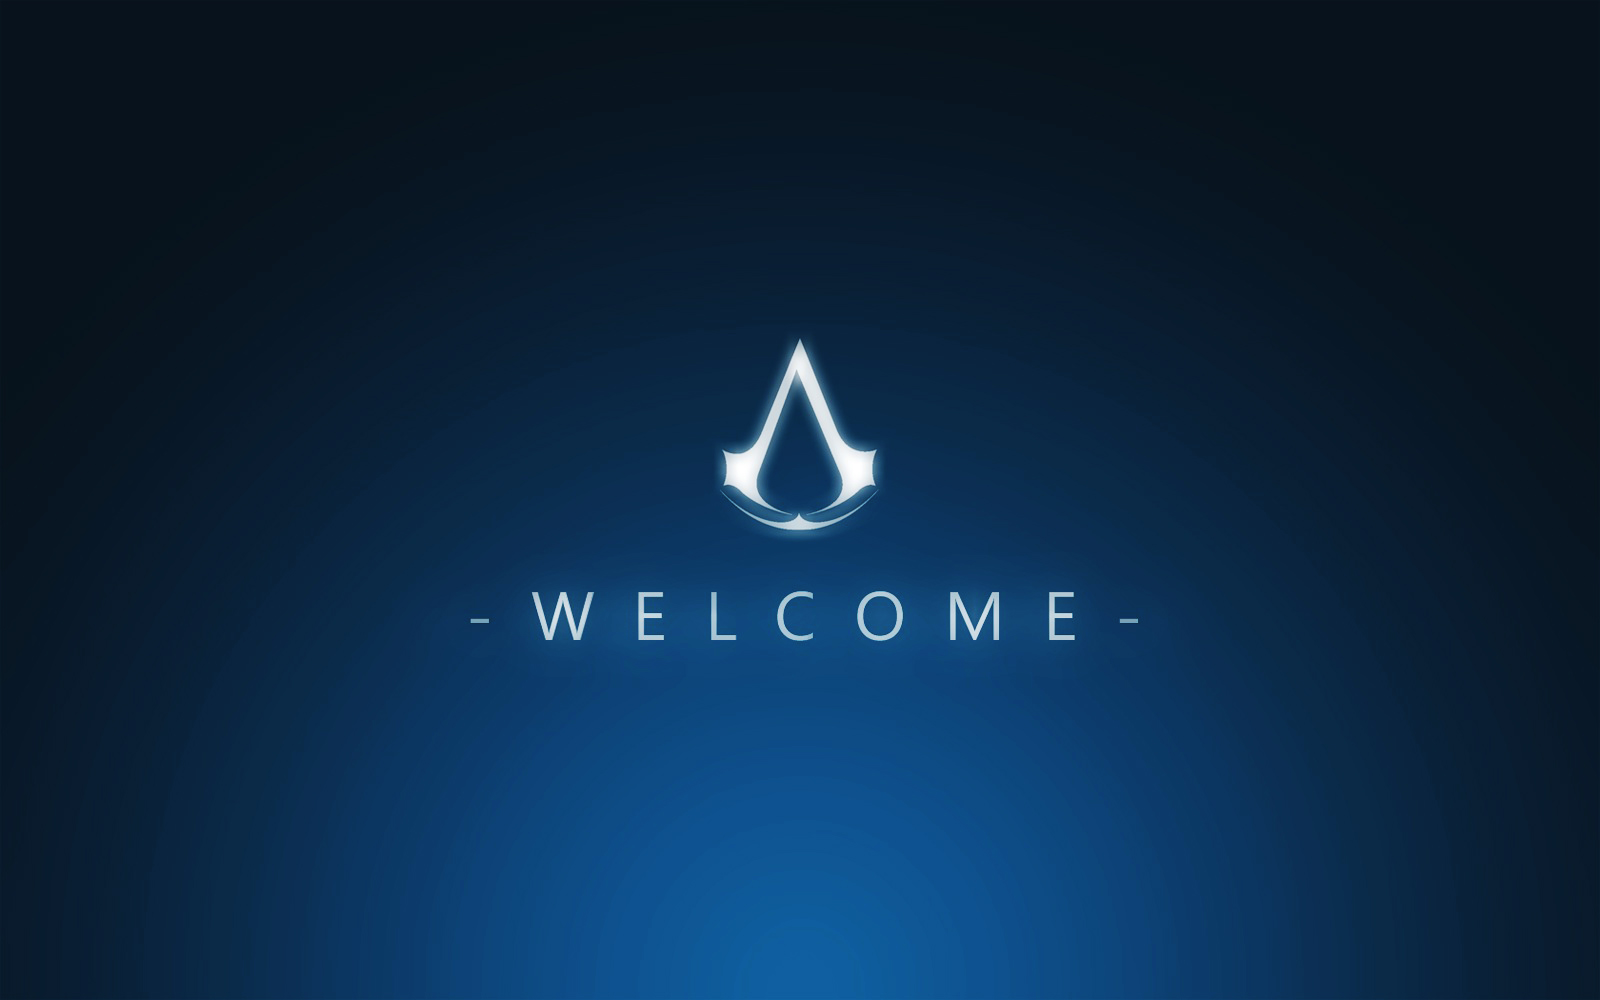 Assassins Creed Logo HD Wallpapers Download Wallpapers in HD for 1600x1000